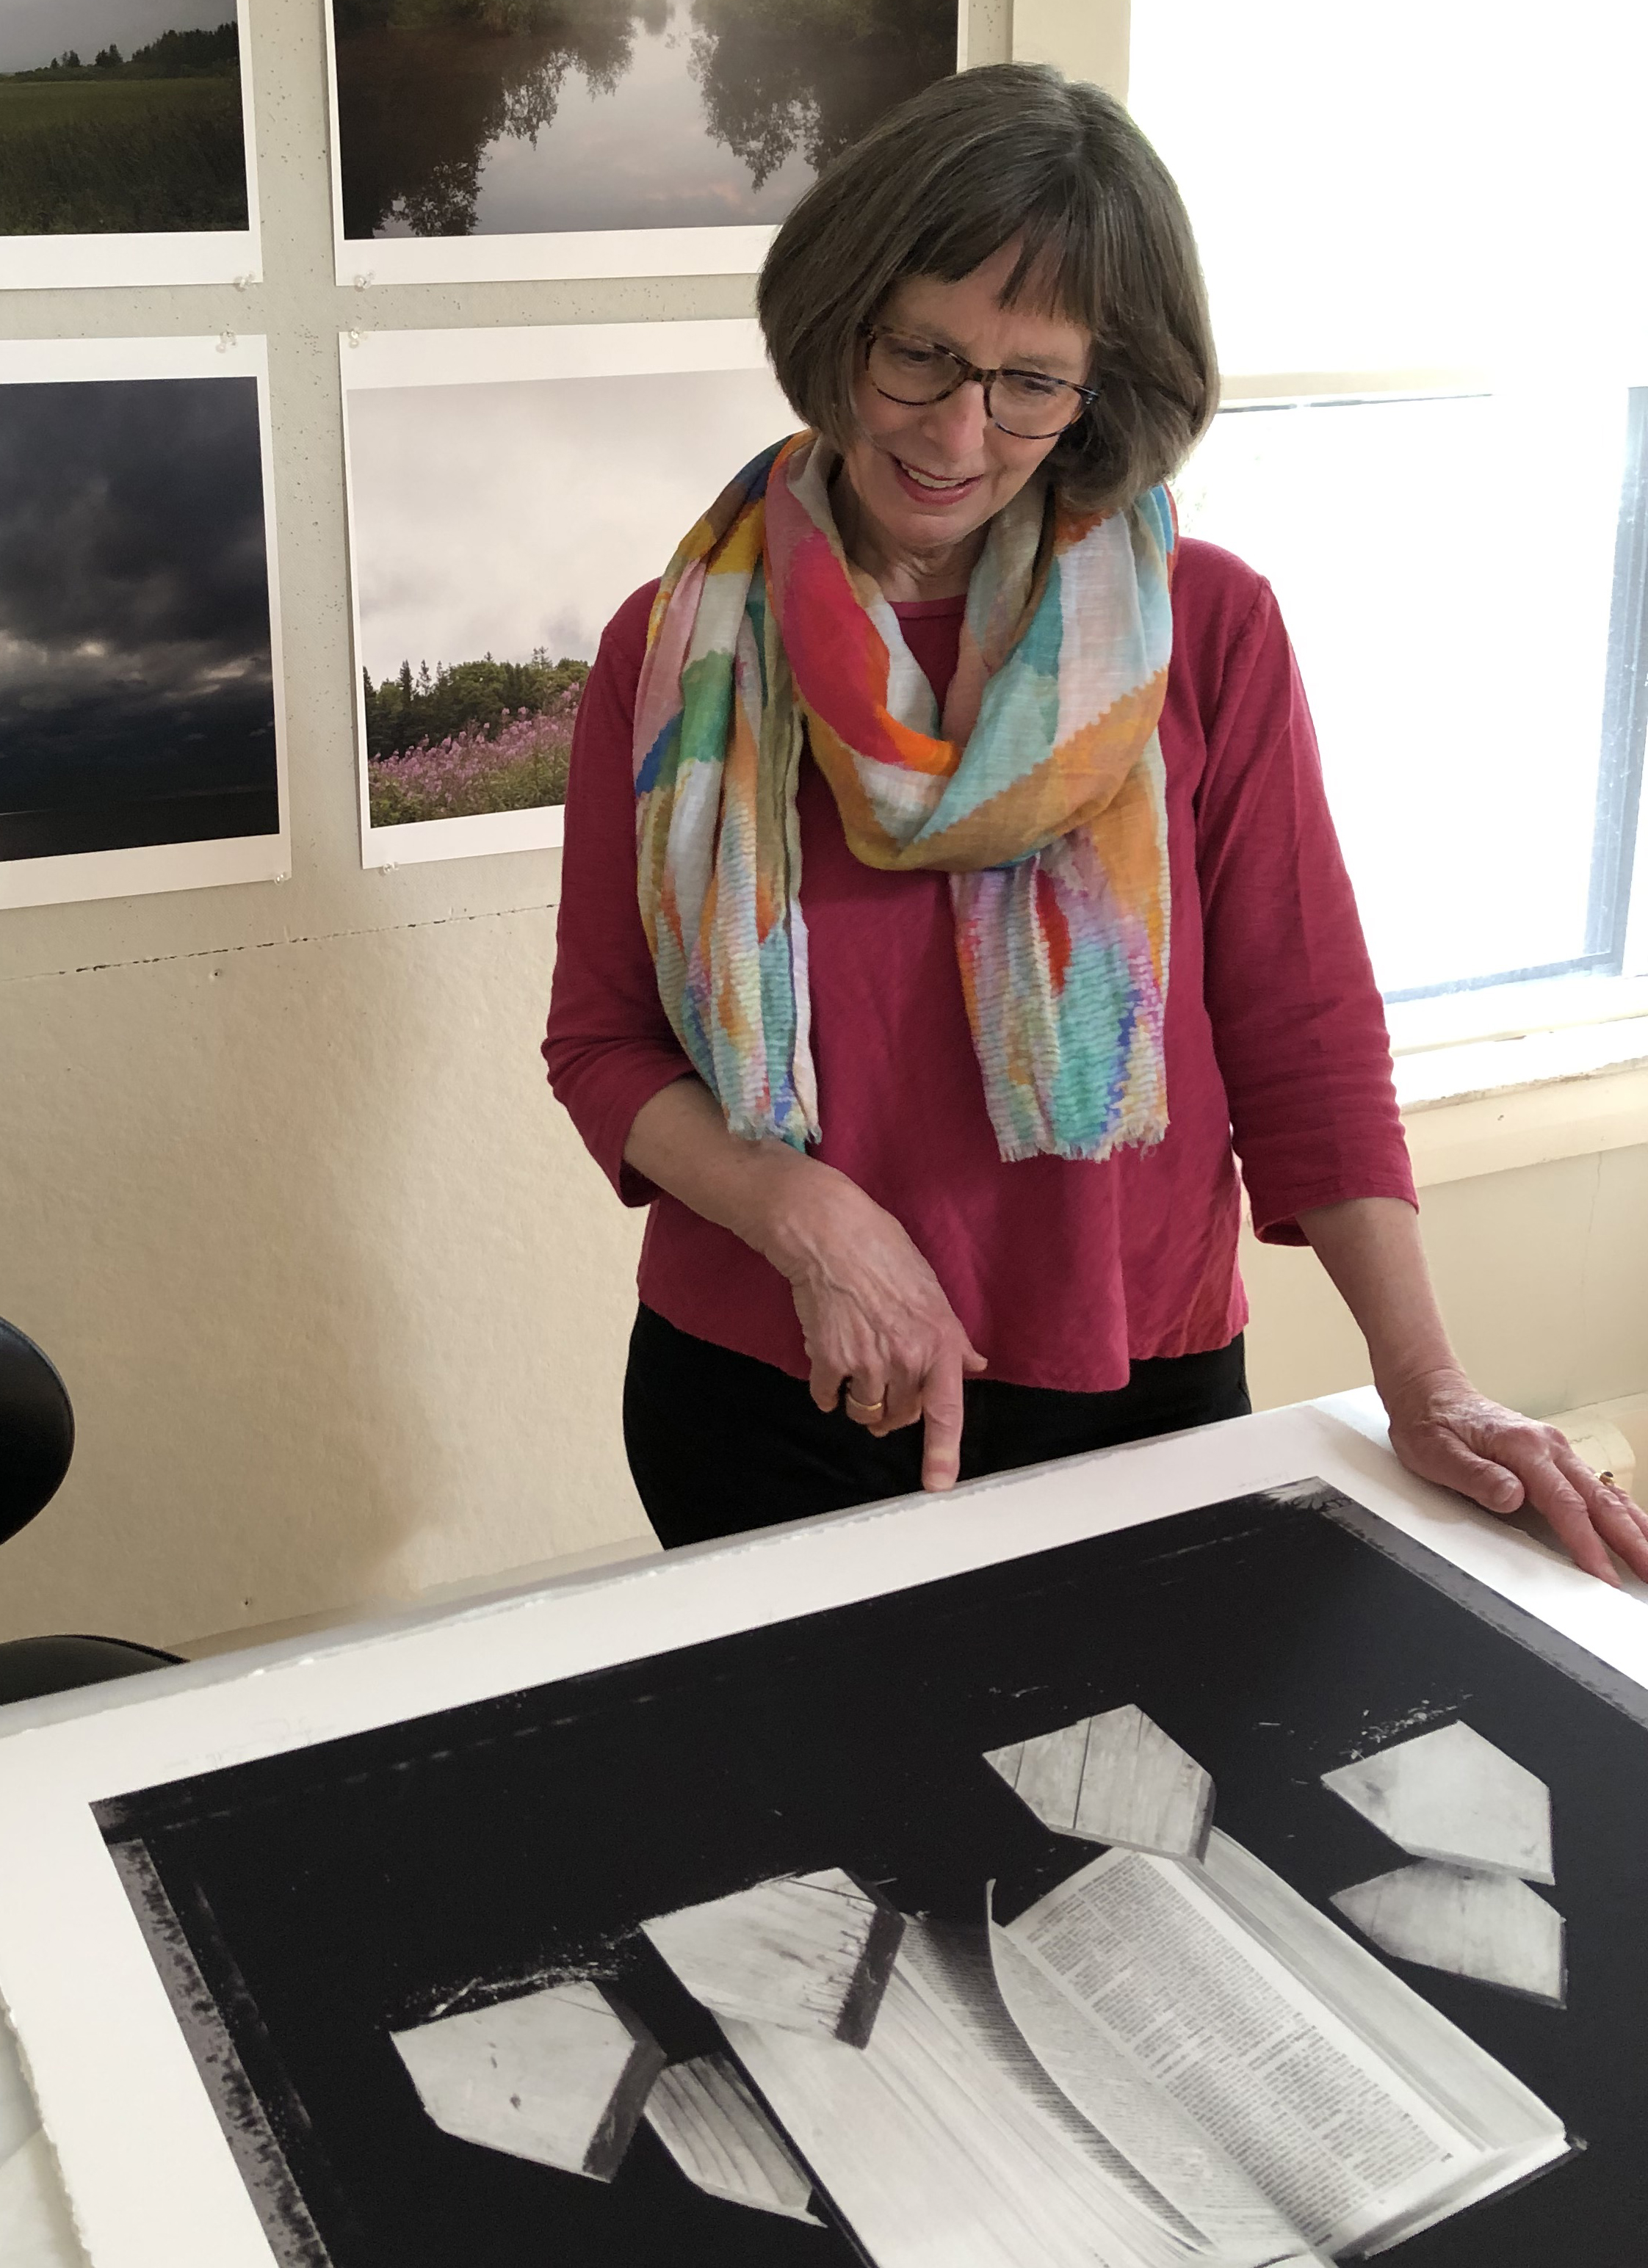 A woman with short hair wearing a scarf points at a photograph laying on a table. There is a grid of landscape photographs pinned to the back wall.